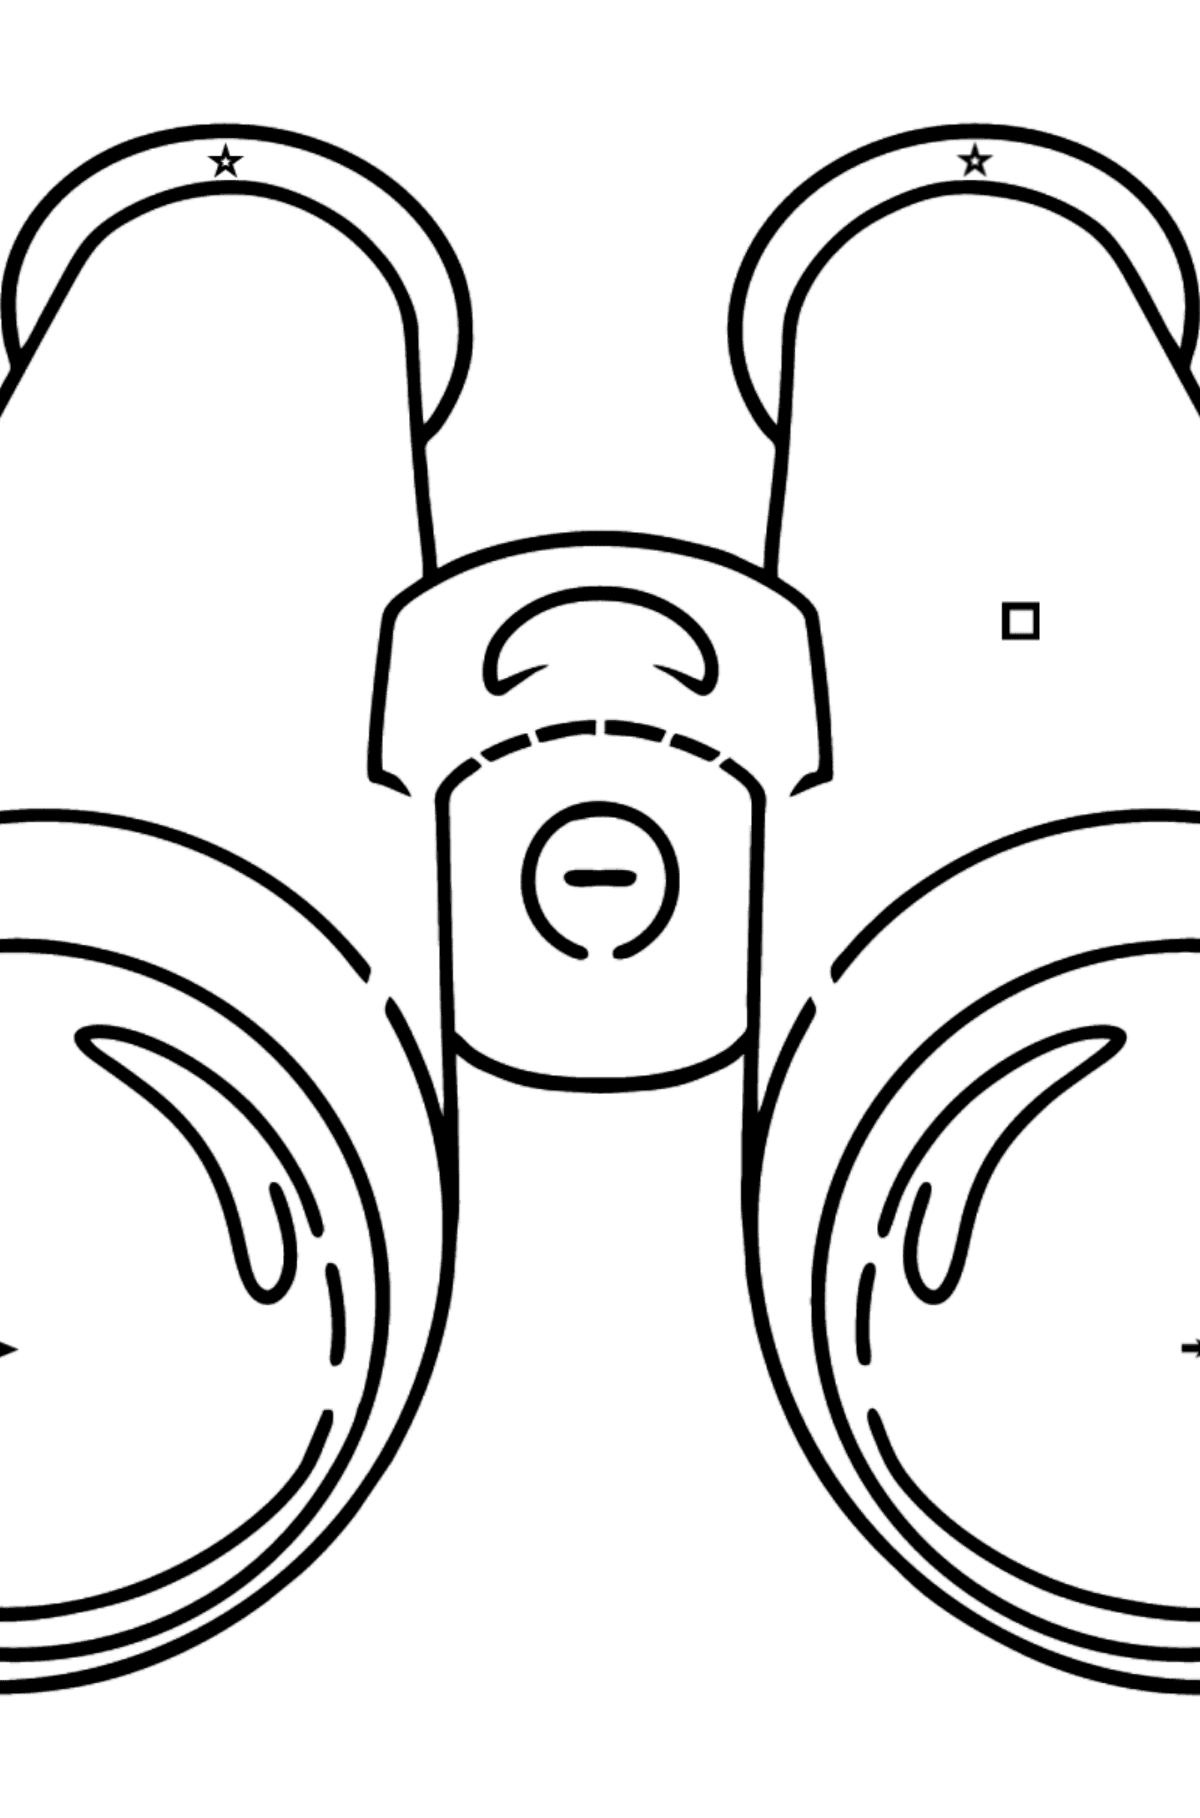 Binoculars coloring page - Coloring by Symbols and Geometric Shapes for Kids